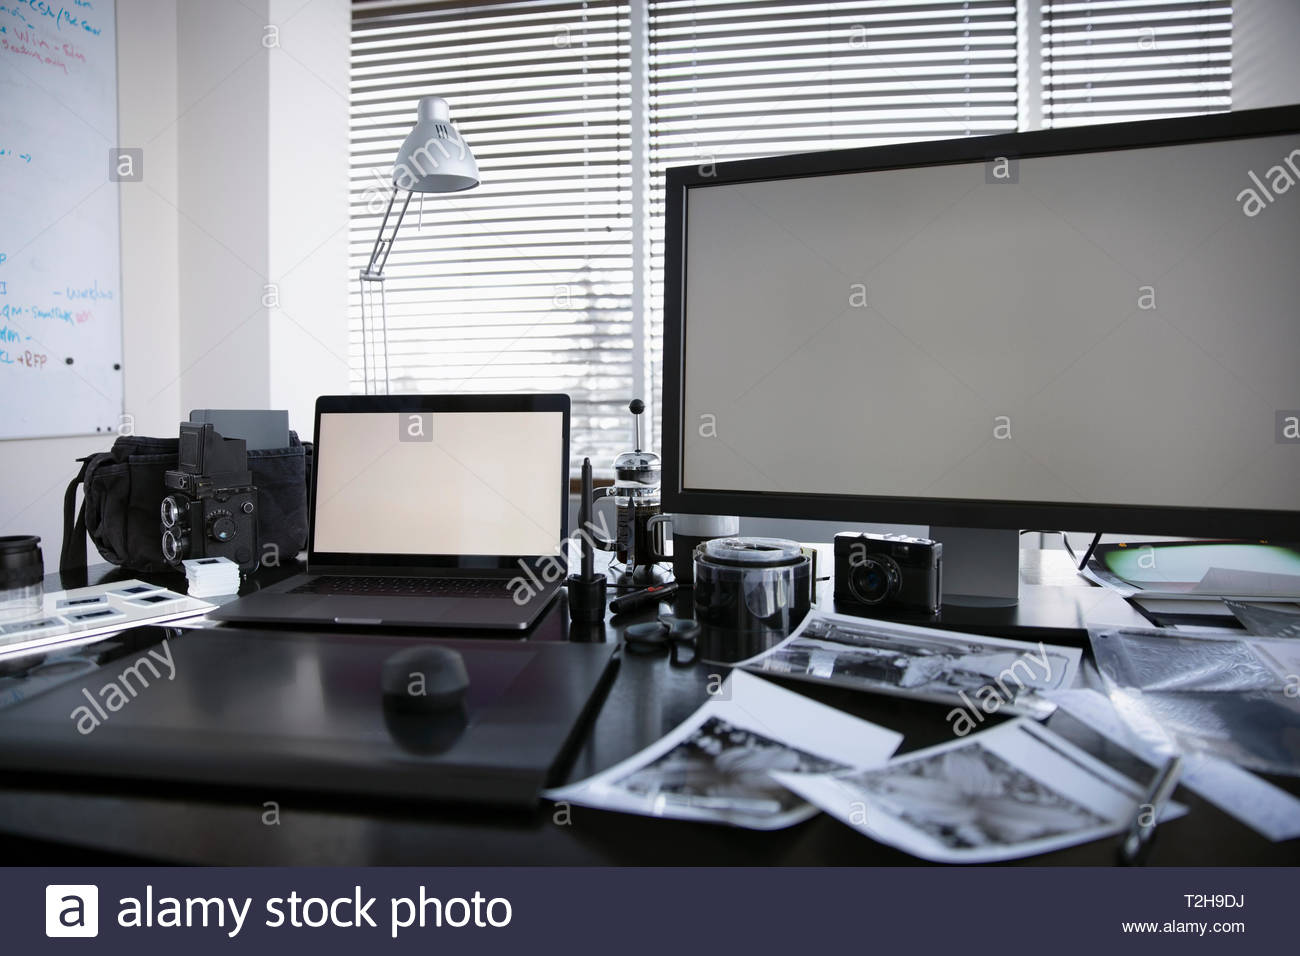 Computers and photography equipment, negatives on desk - Stock Image